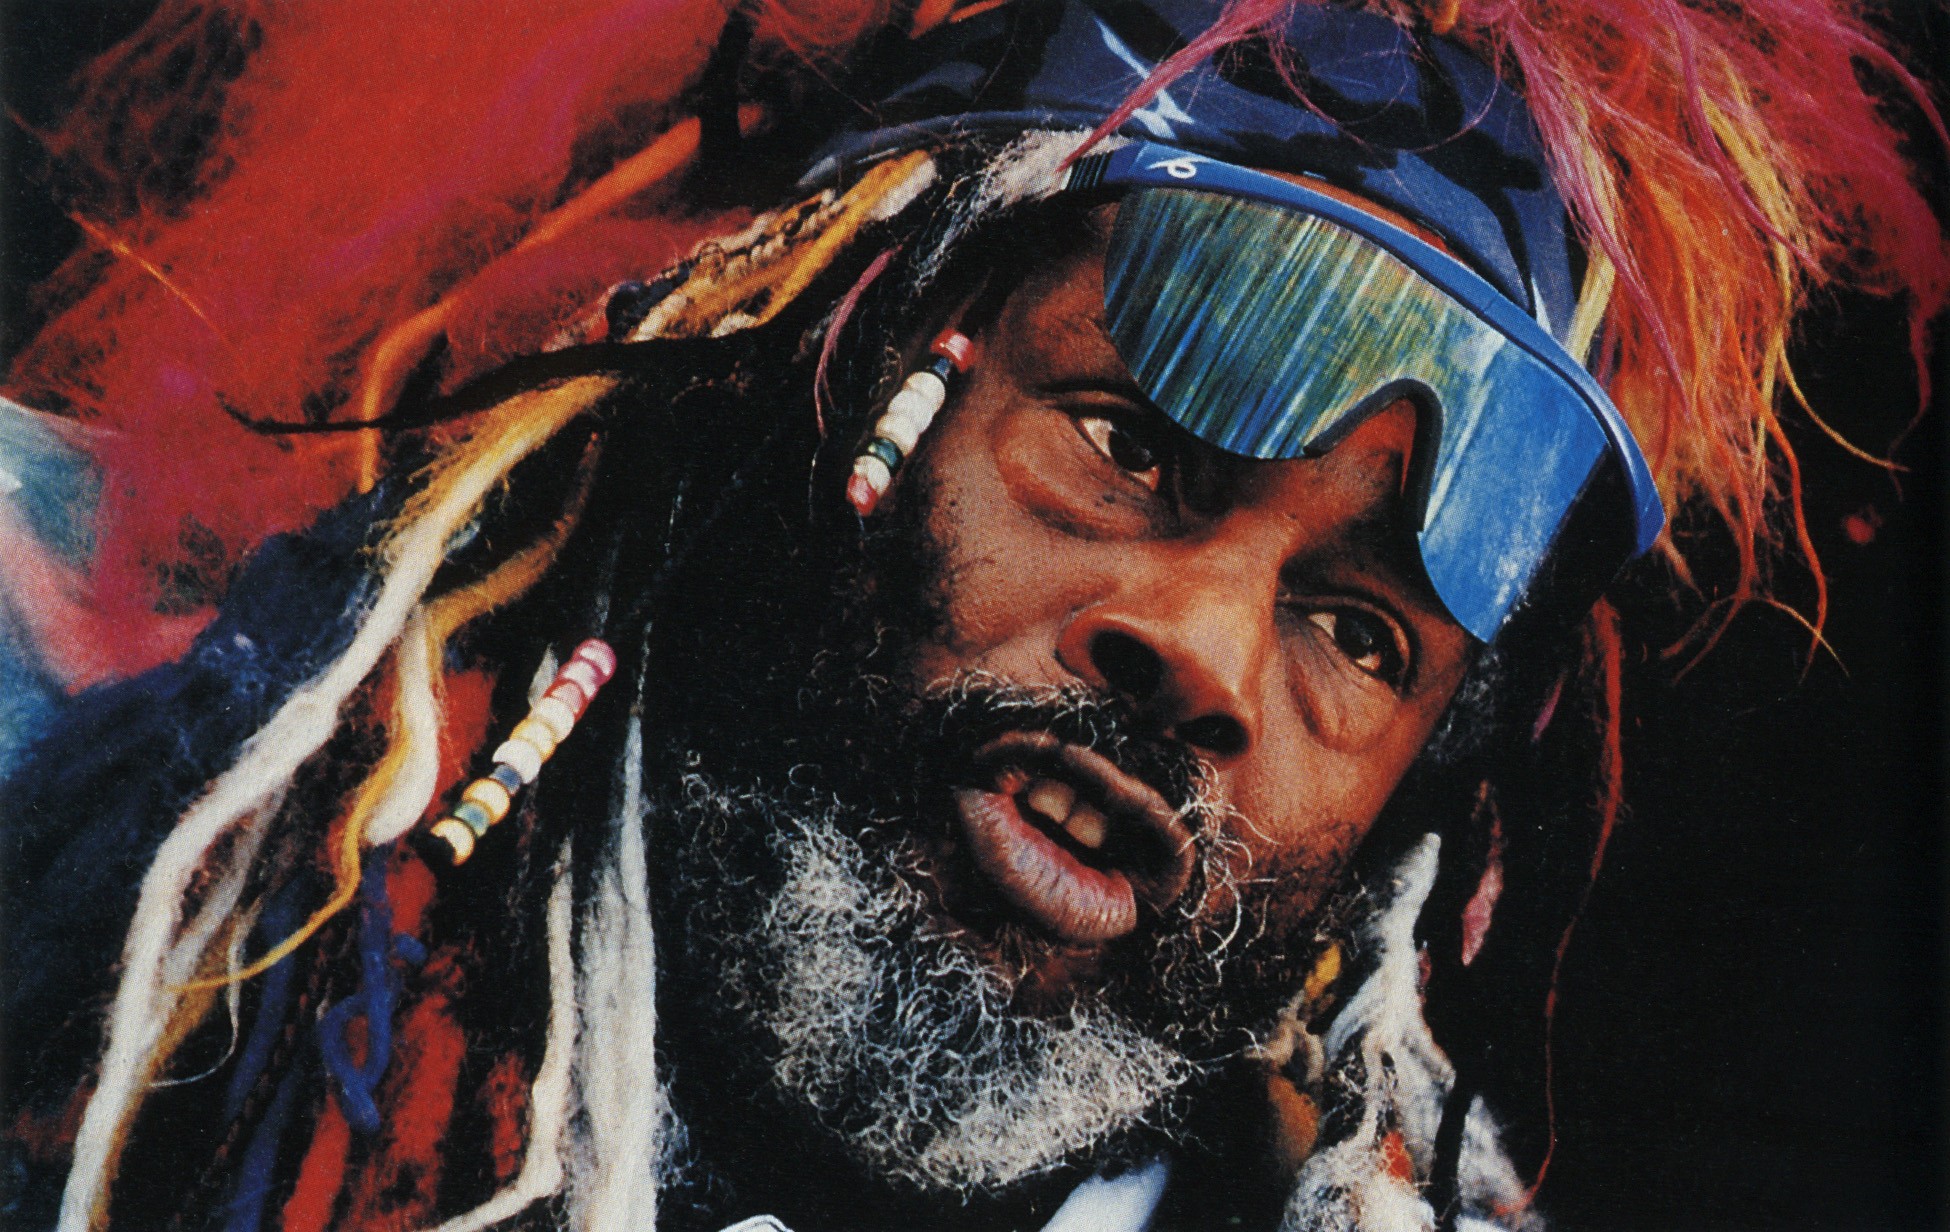 George Clinton Arrested On Drug Charge | Contactmusic.com